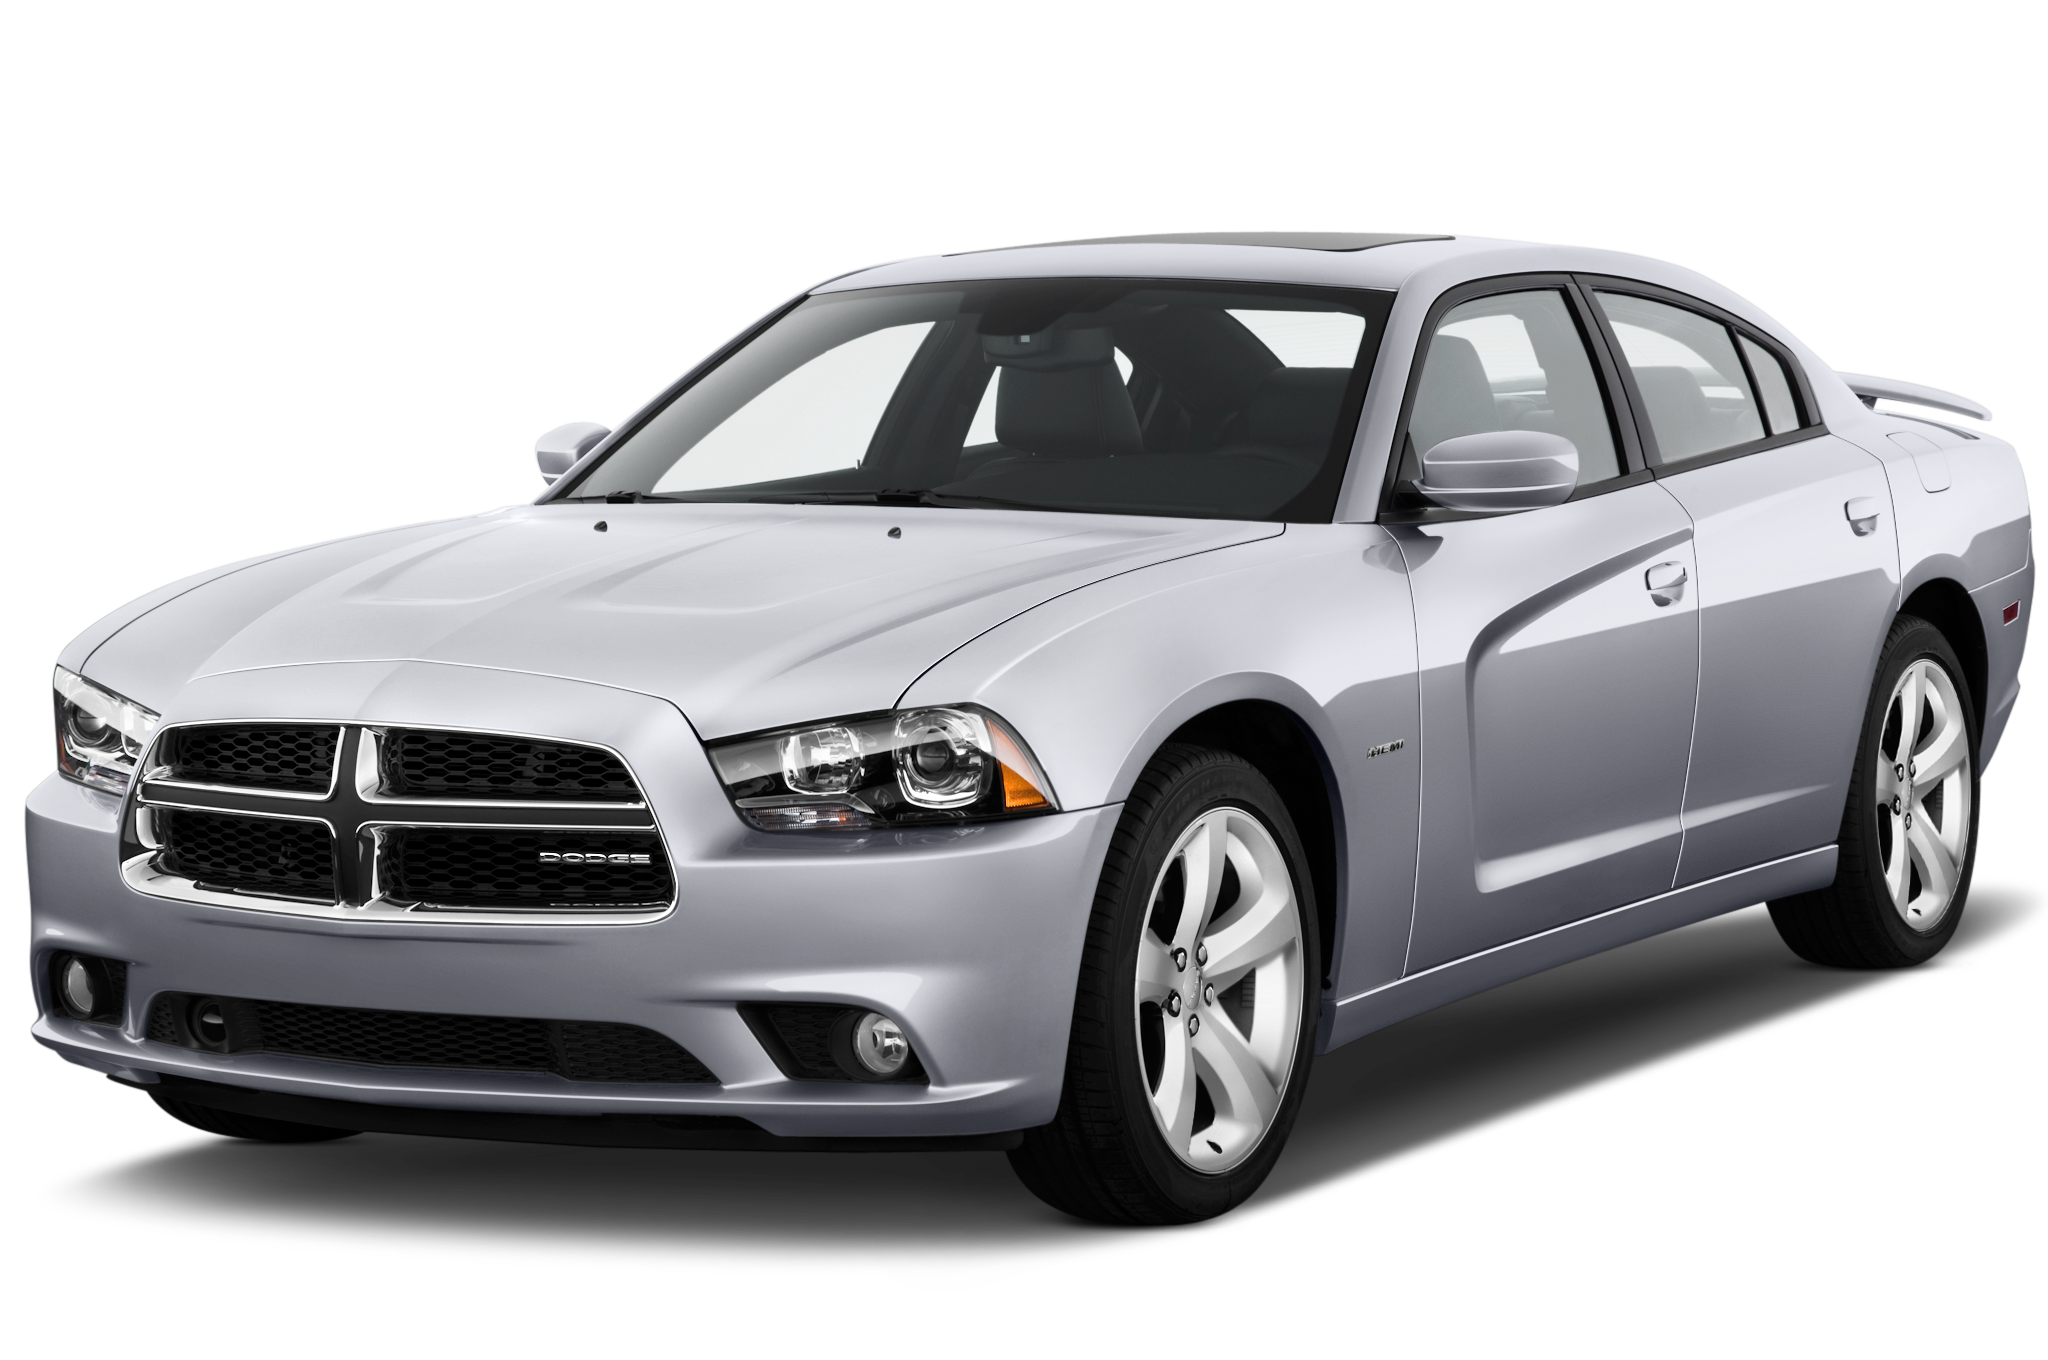 2014 dodge charger challenger centennial editions debut before 2013 l a show automobile magazine. Black Bedroom Furniture Sets. Home Design Ideas